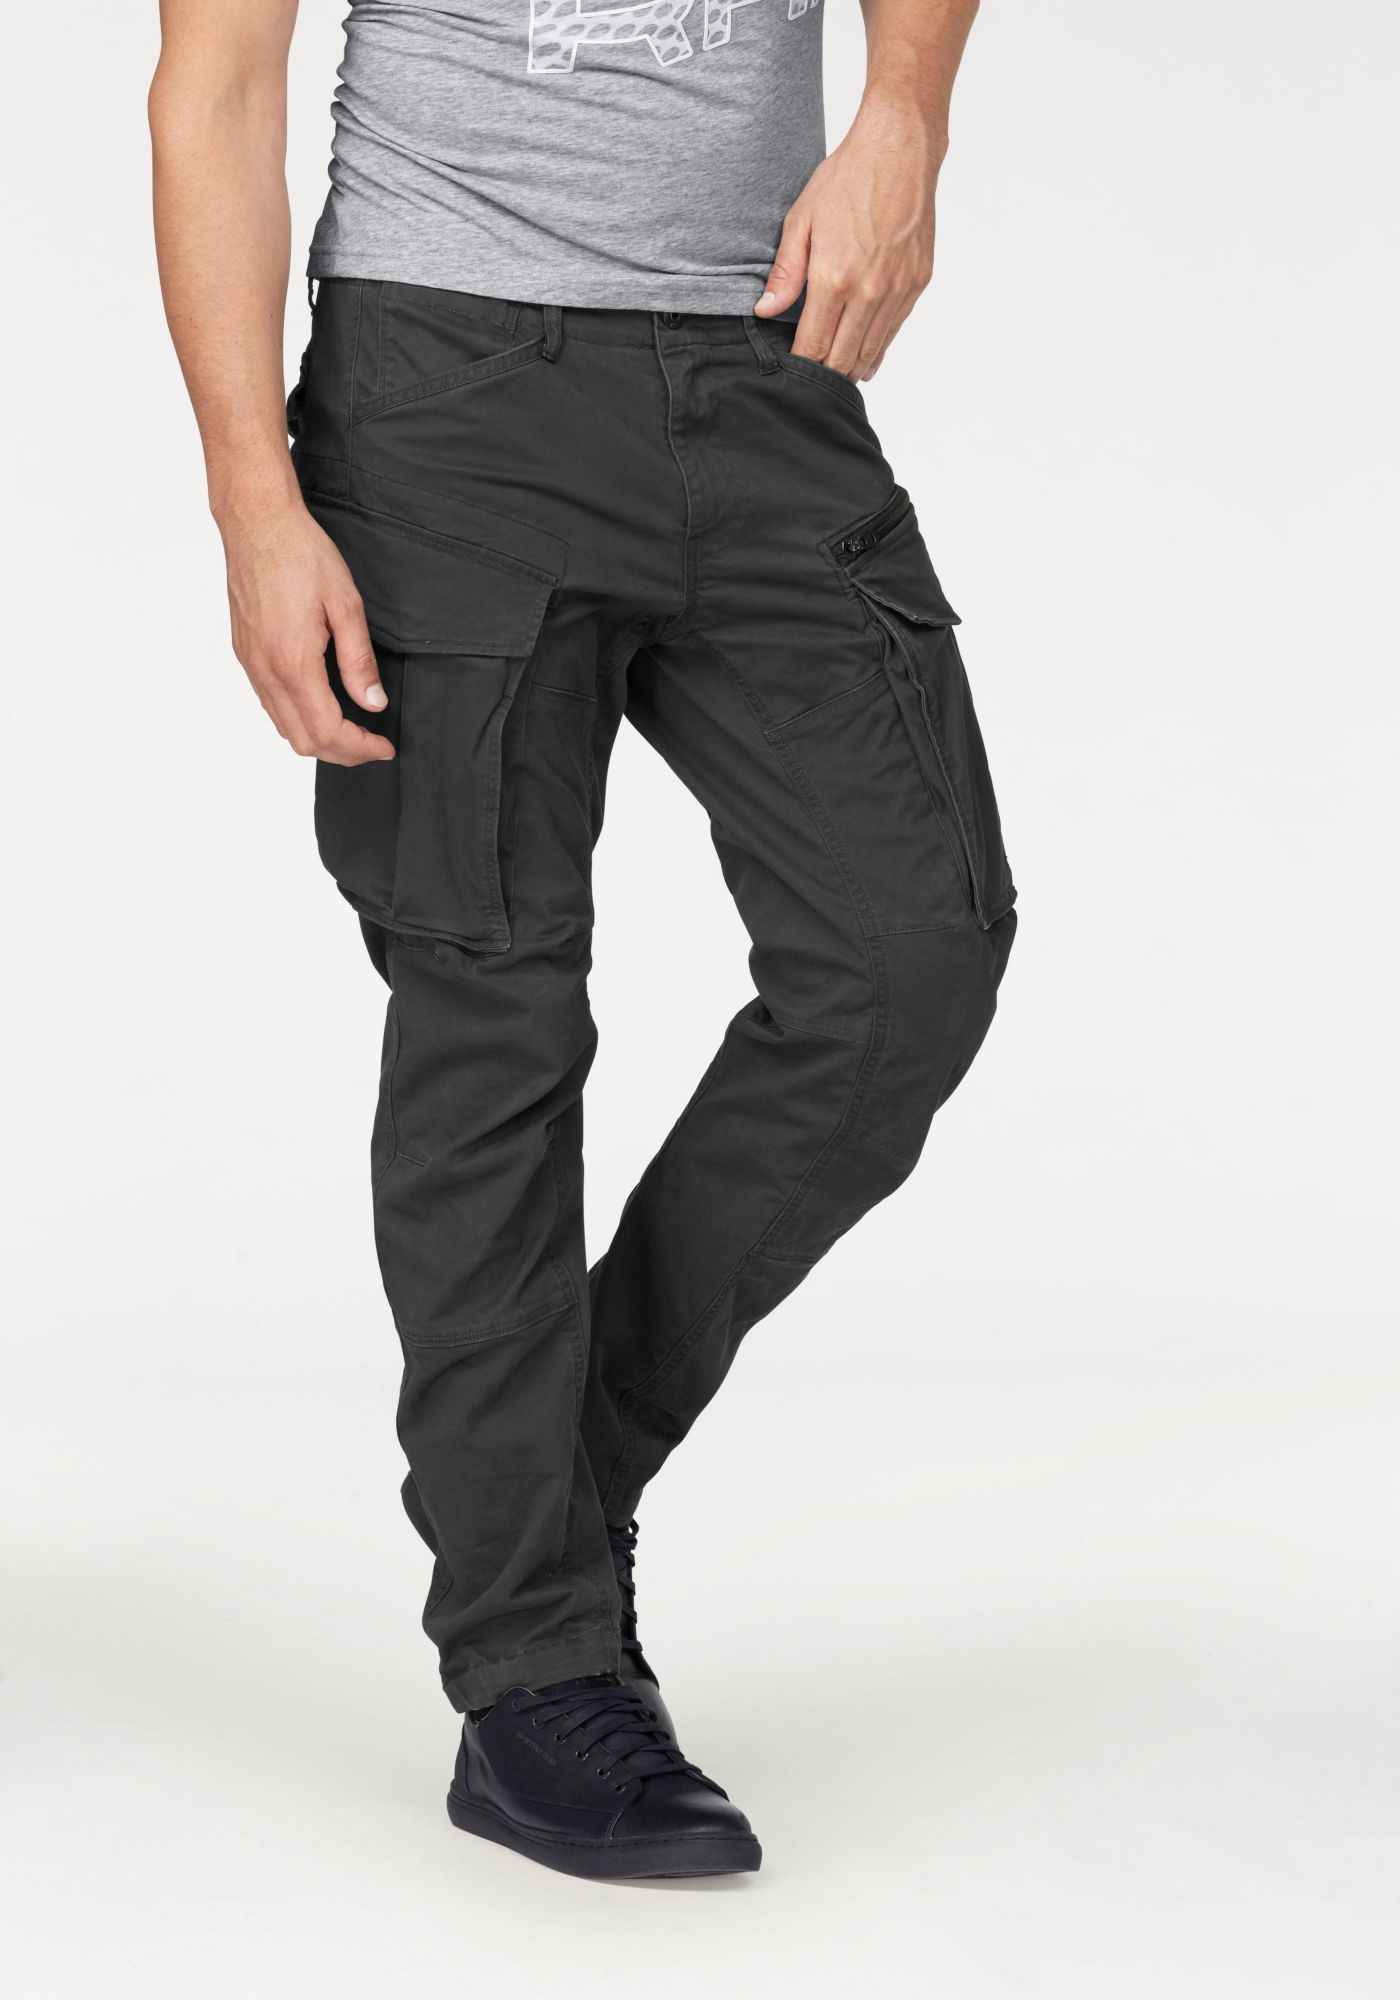 G STAR G-Star Cargohose »Rovic Zip 3D tapered«